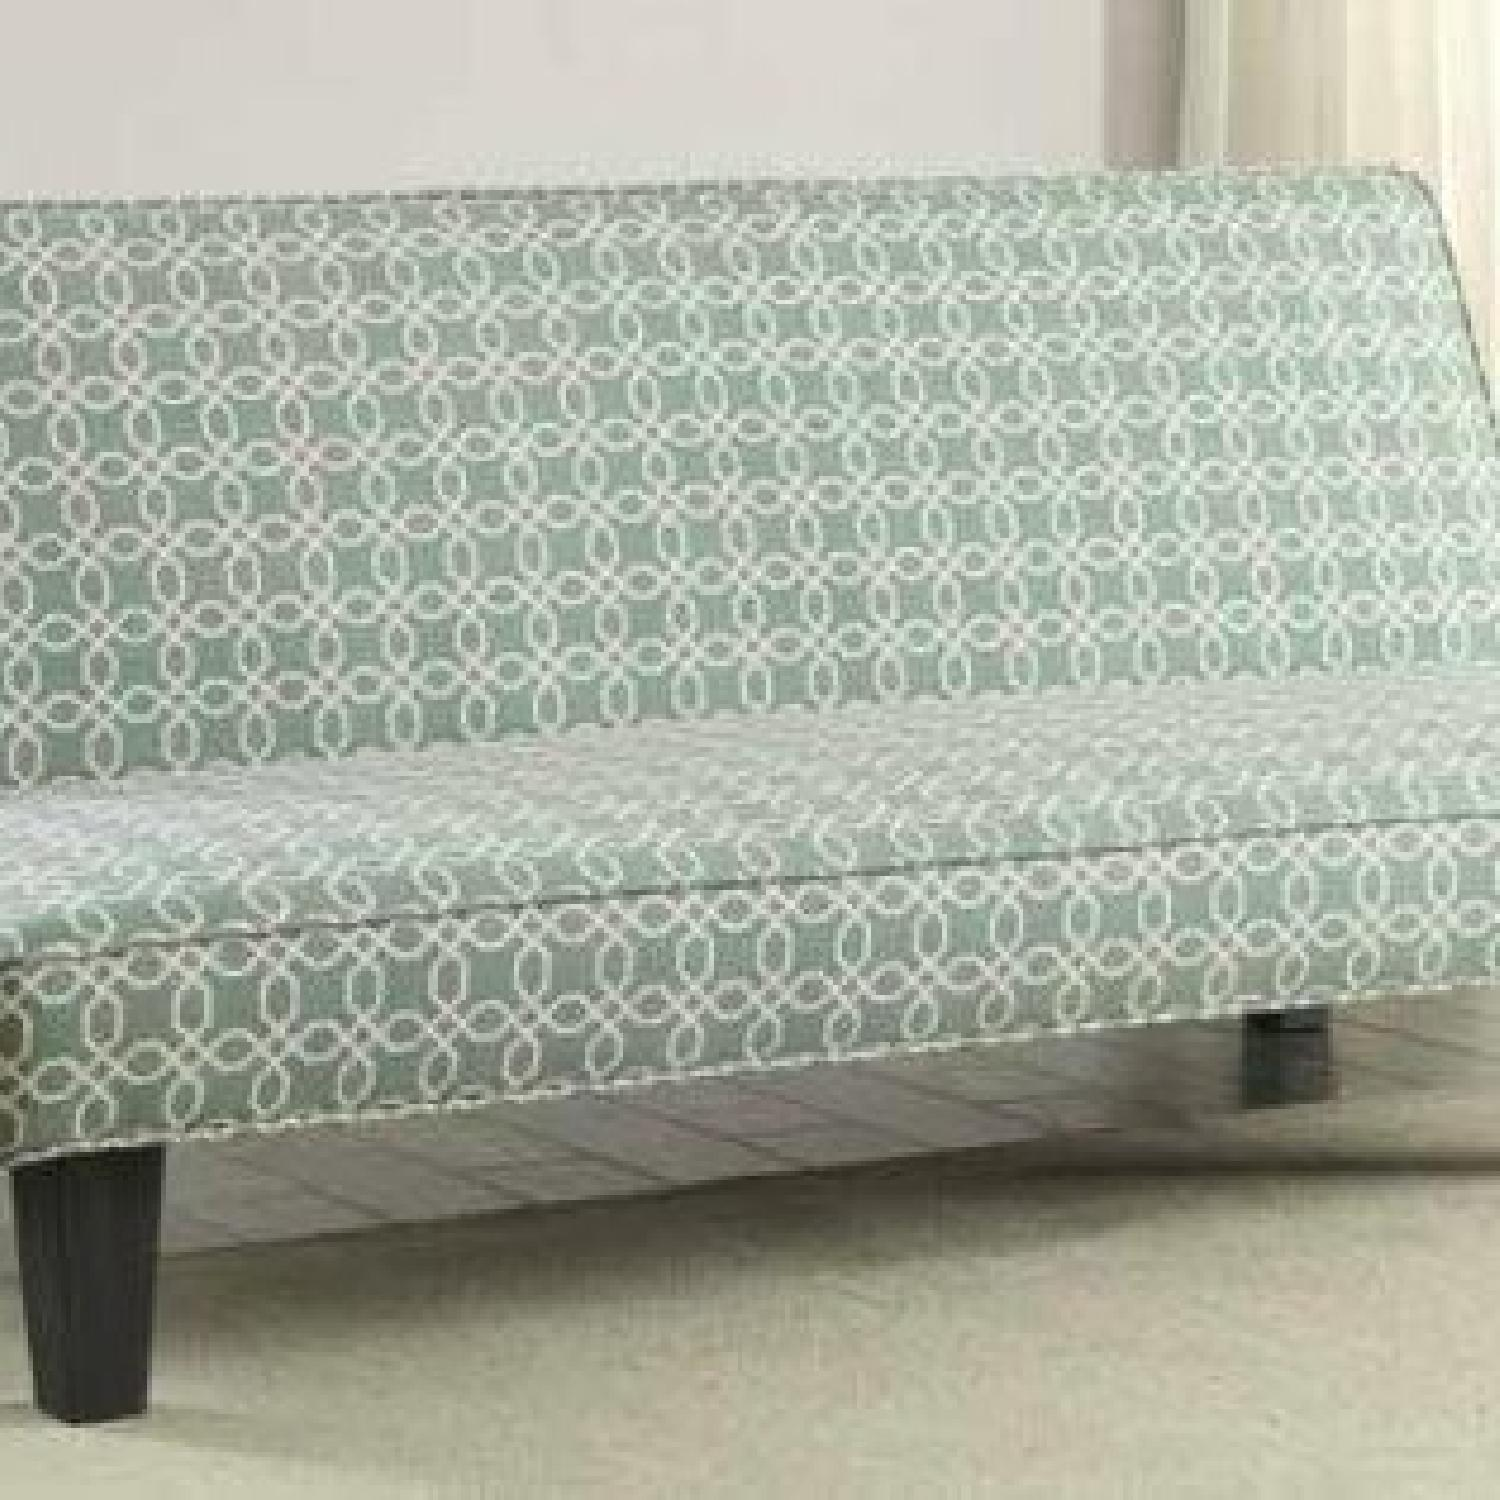 Convertible Sofabed in Teal Fabric - image-2